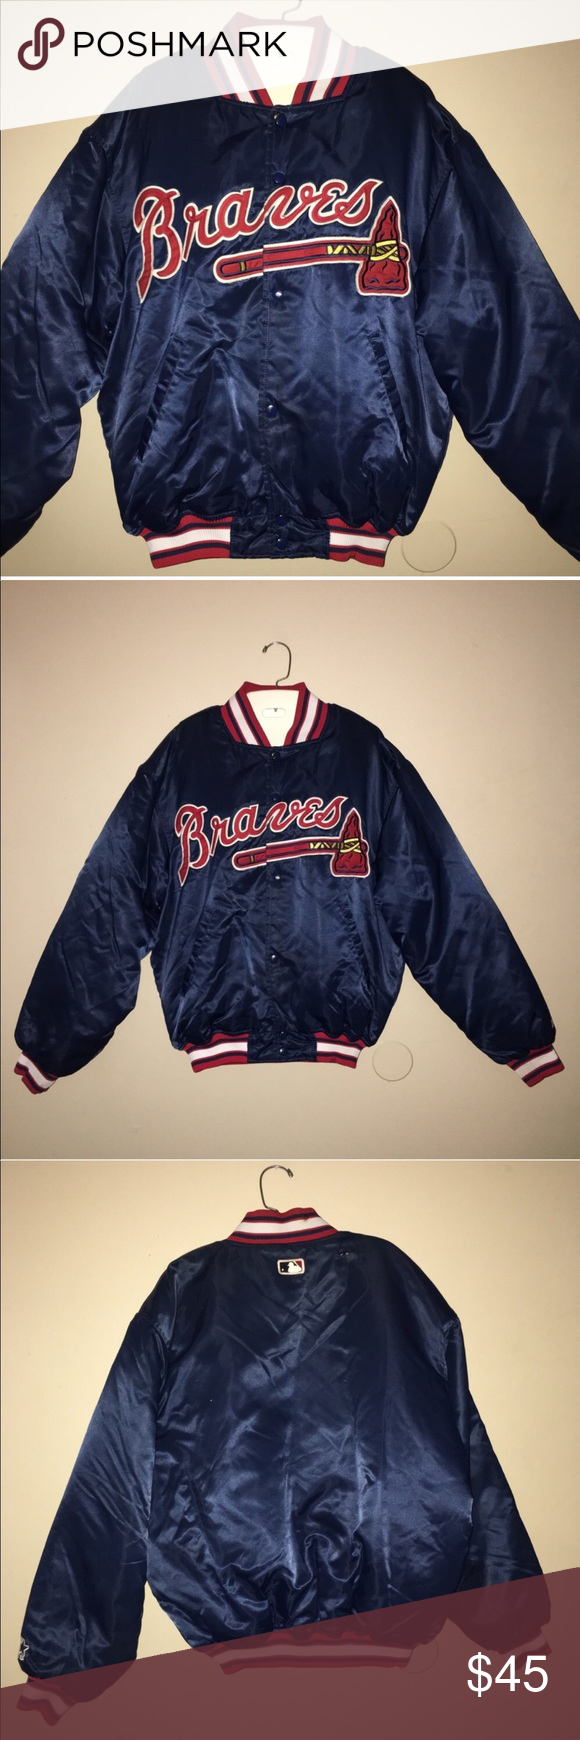 Atlanta Braves Official Starter Varsity Jacket In 2020 Varsity Jacket Jackets Atlanta Braves